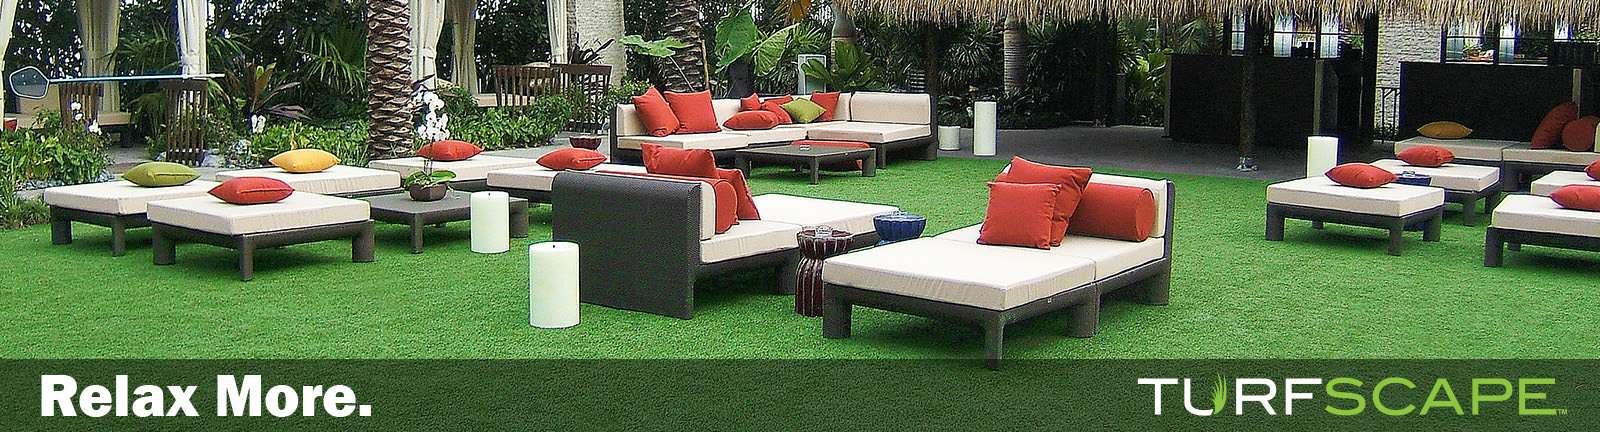 ActGlobal - TurfScape synthetic landsape grass